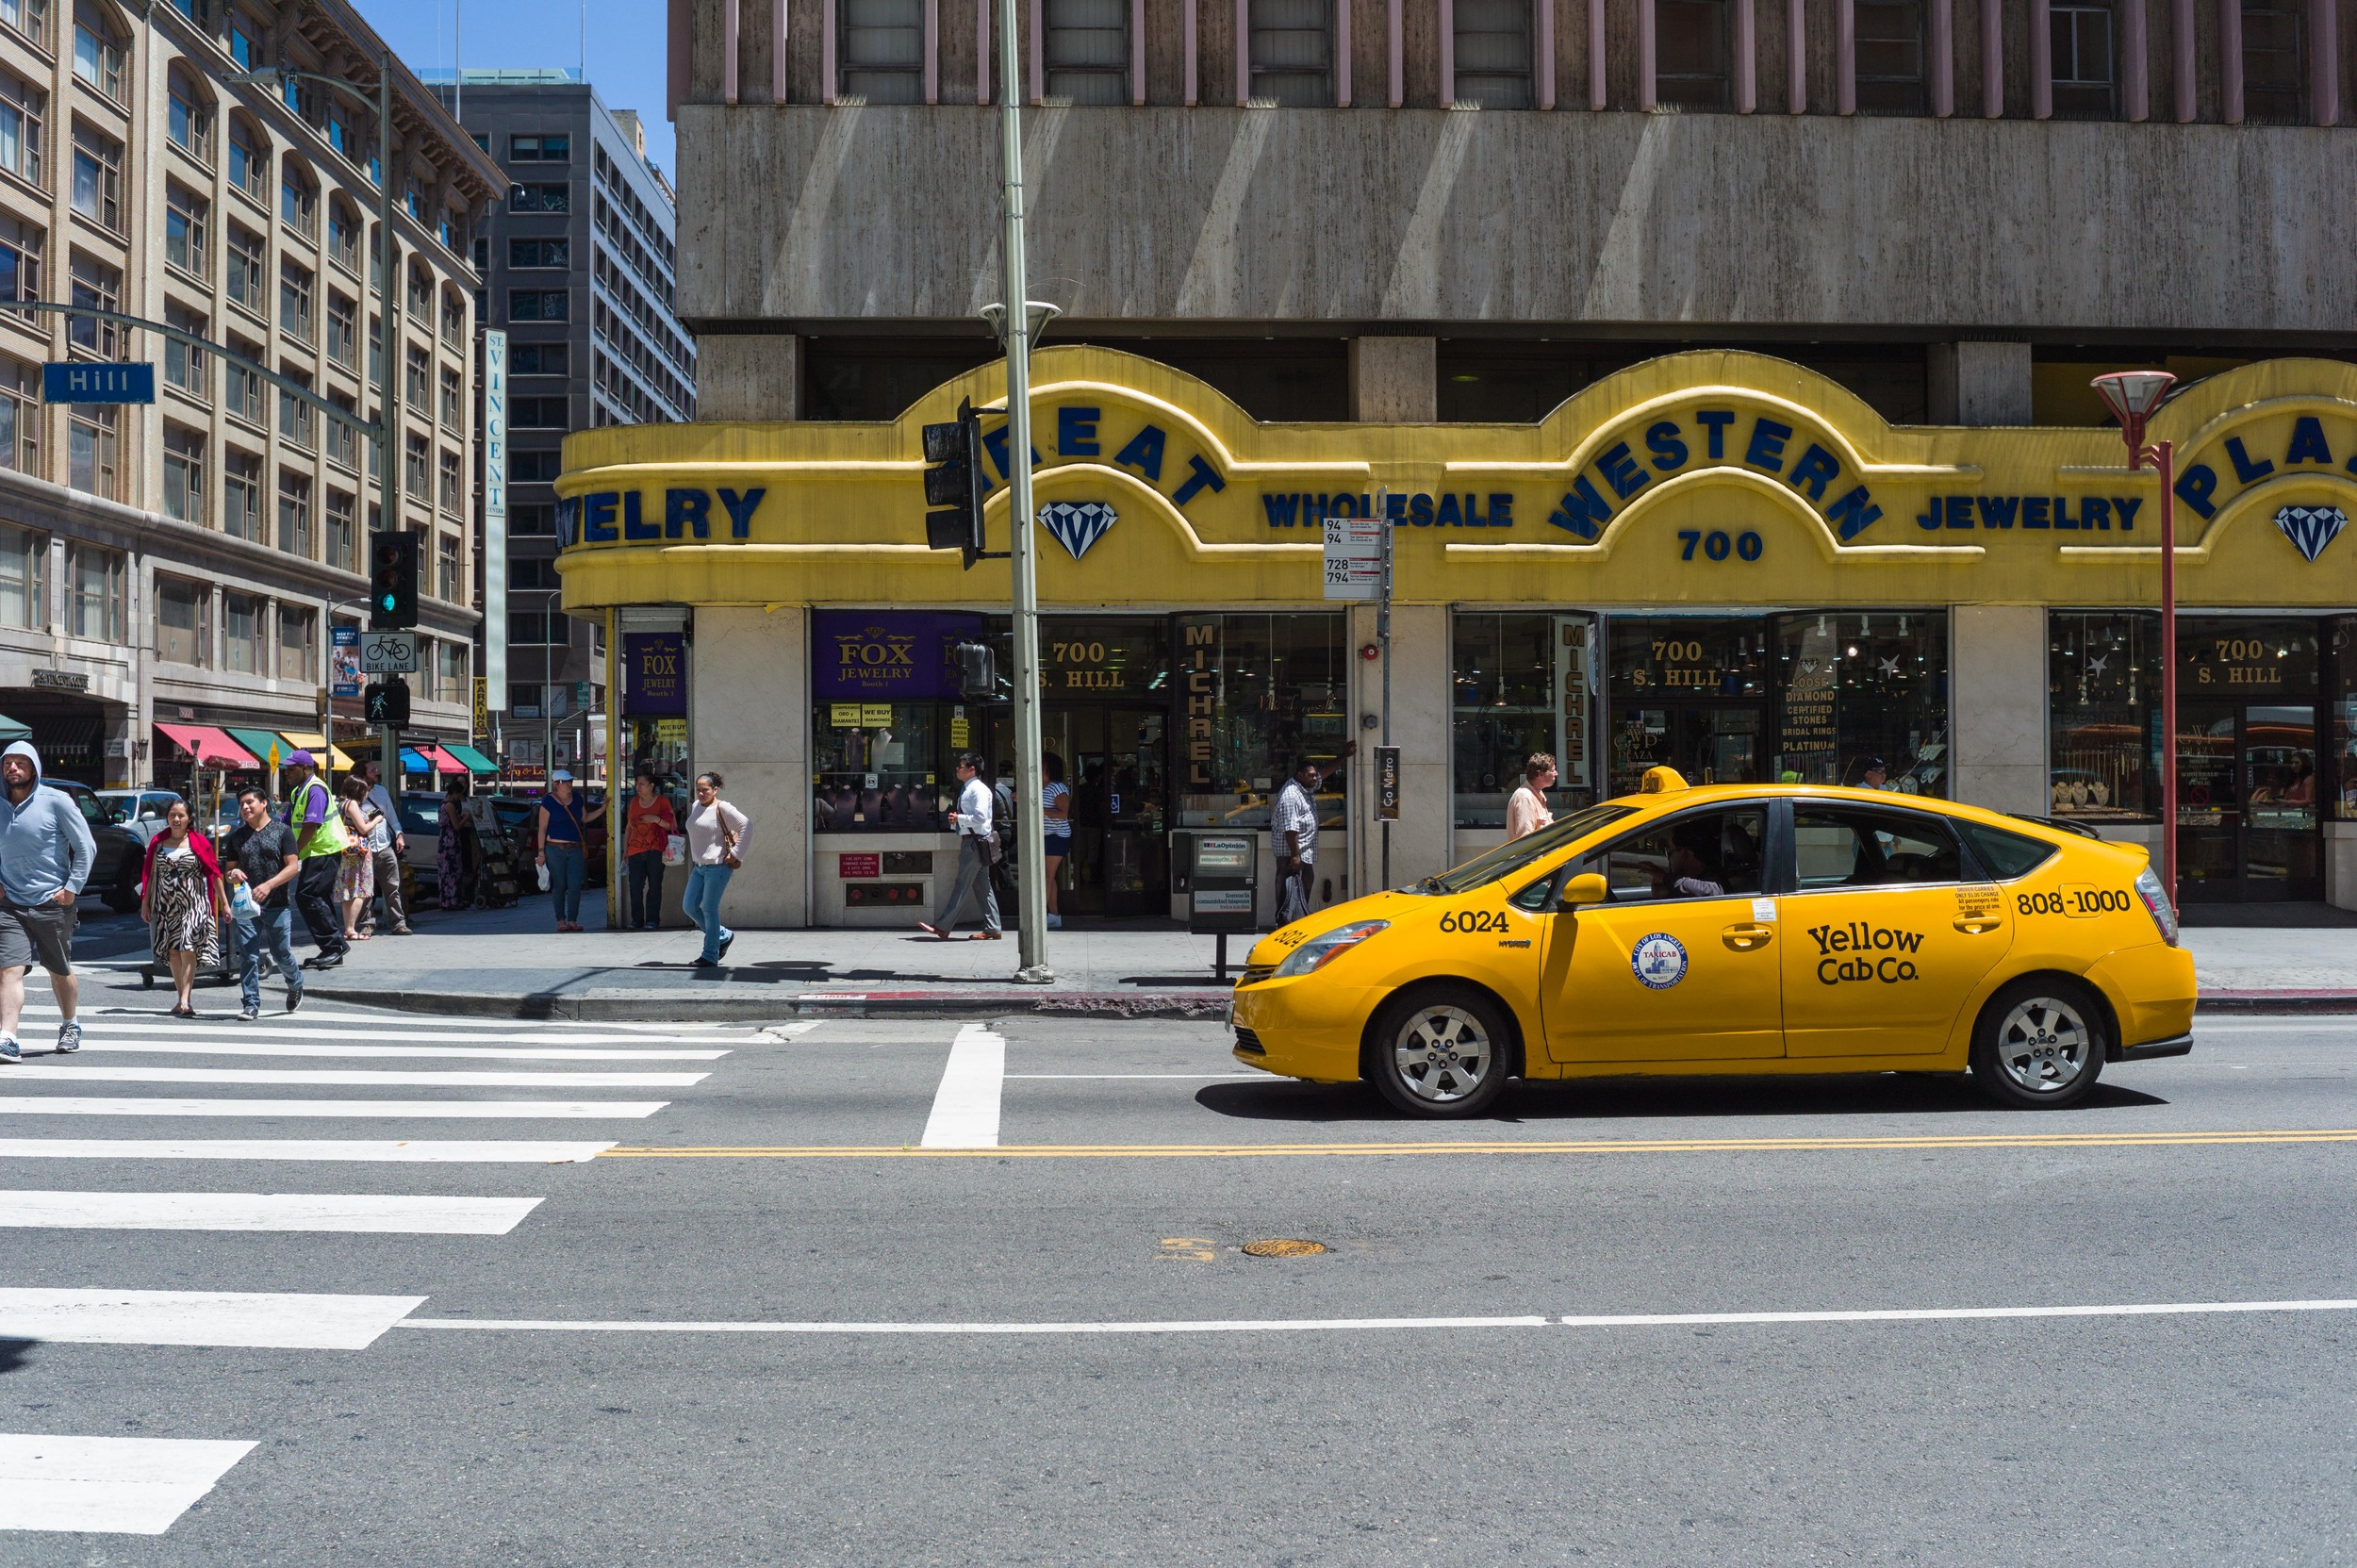 A Yellow Cab